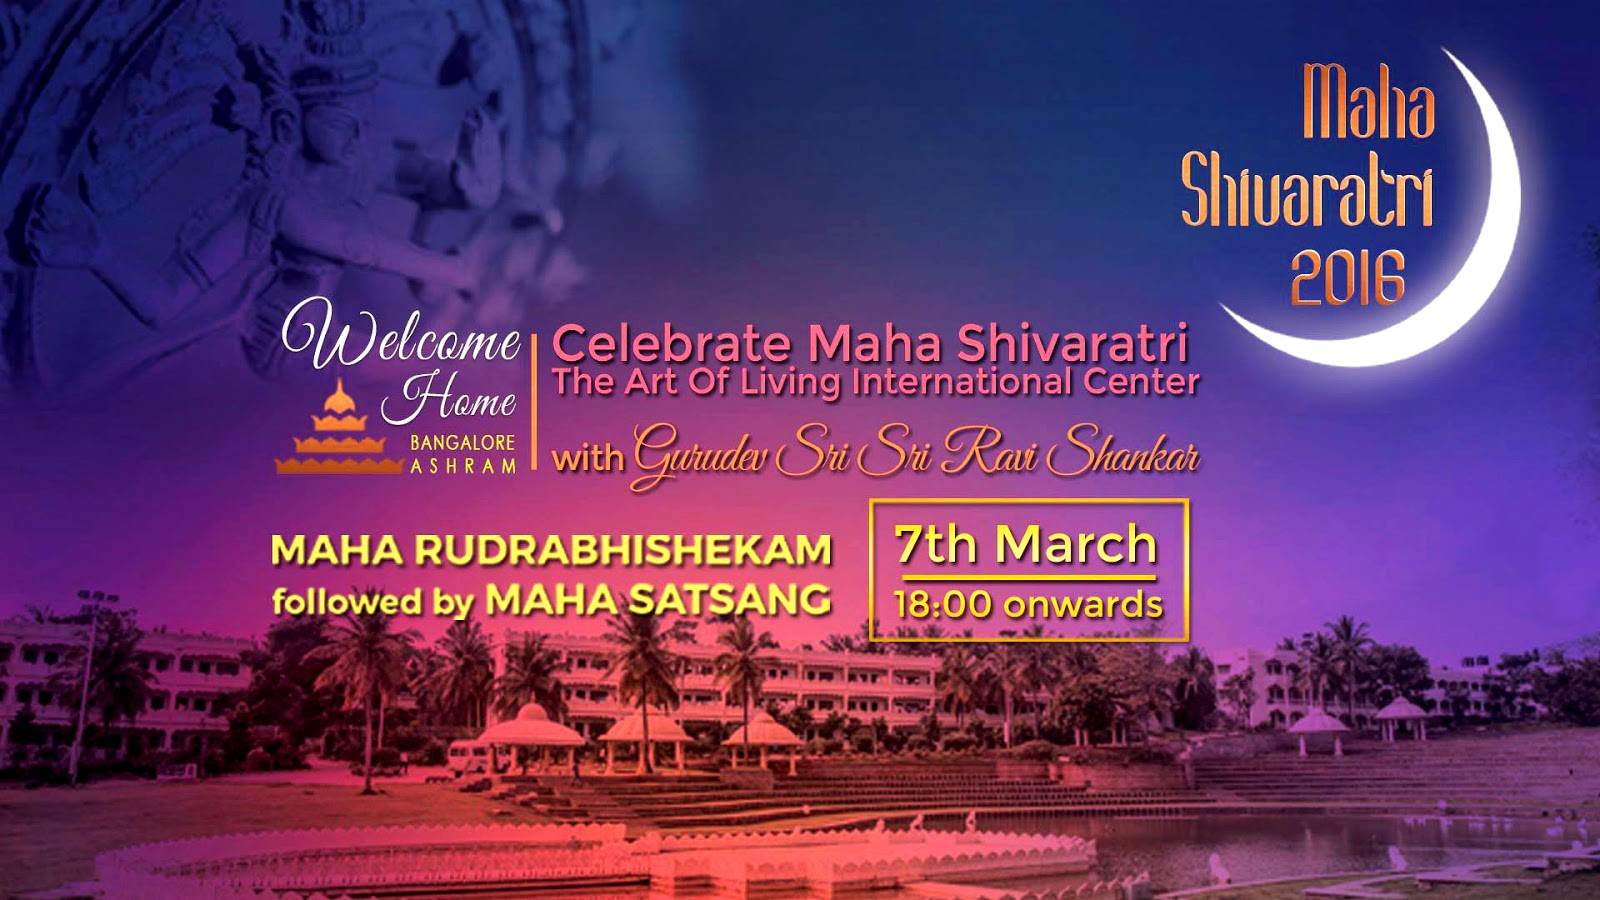 Maha Shivaratri Celebrations 2016